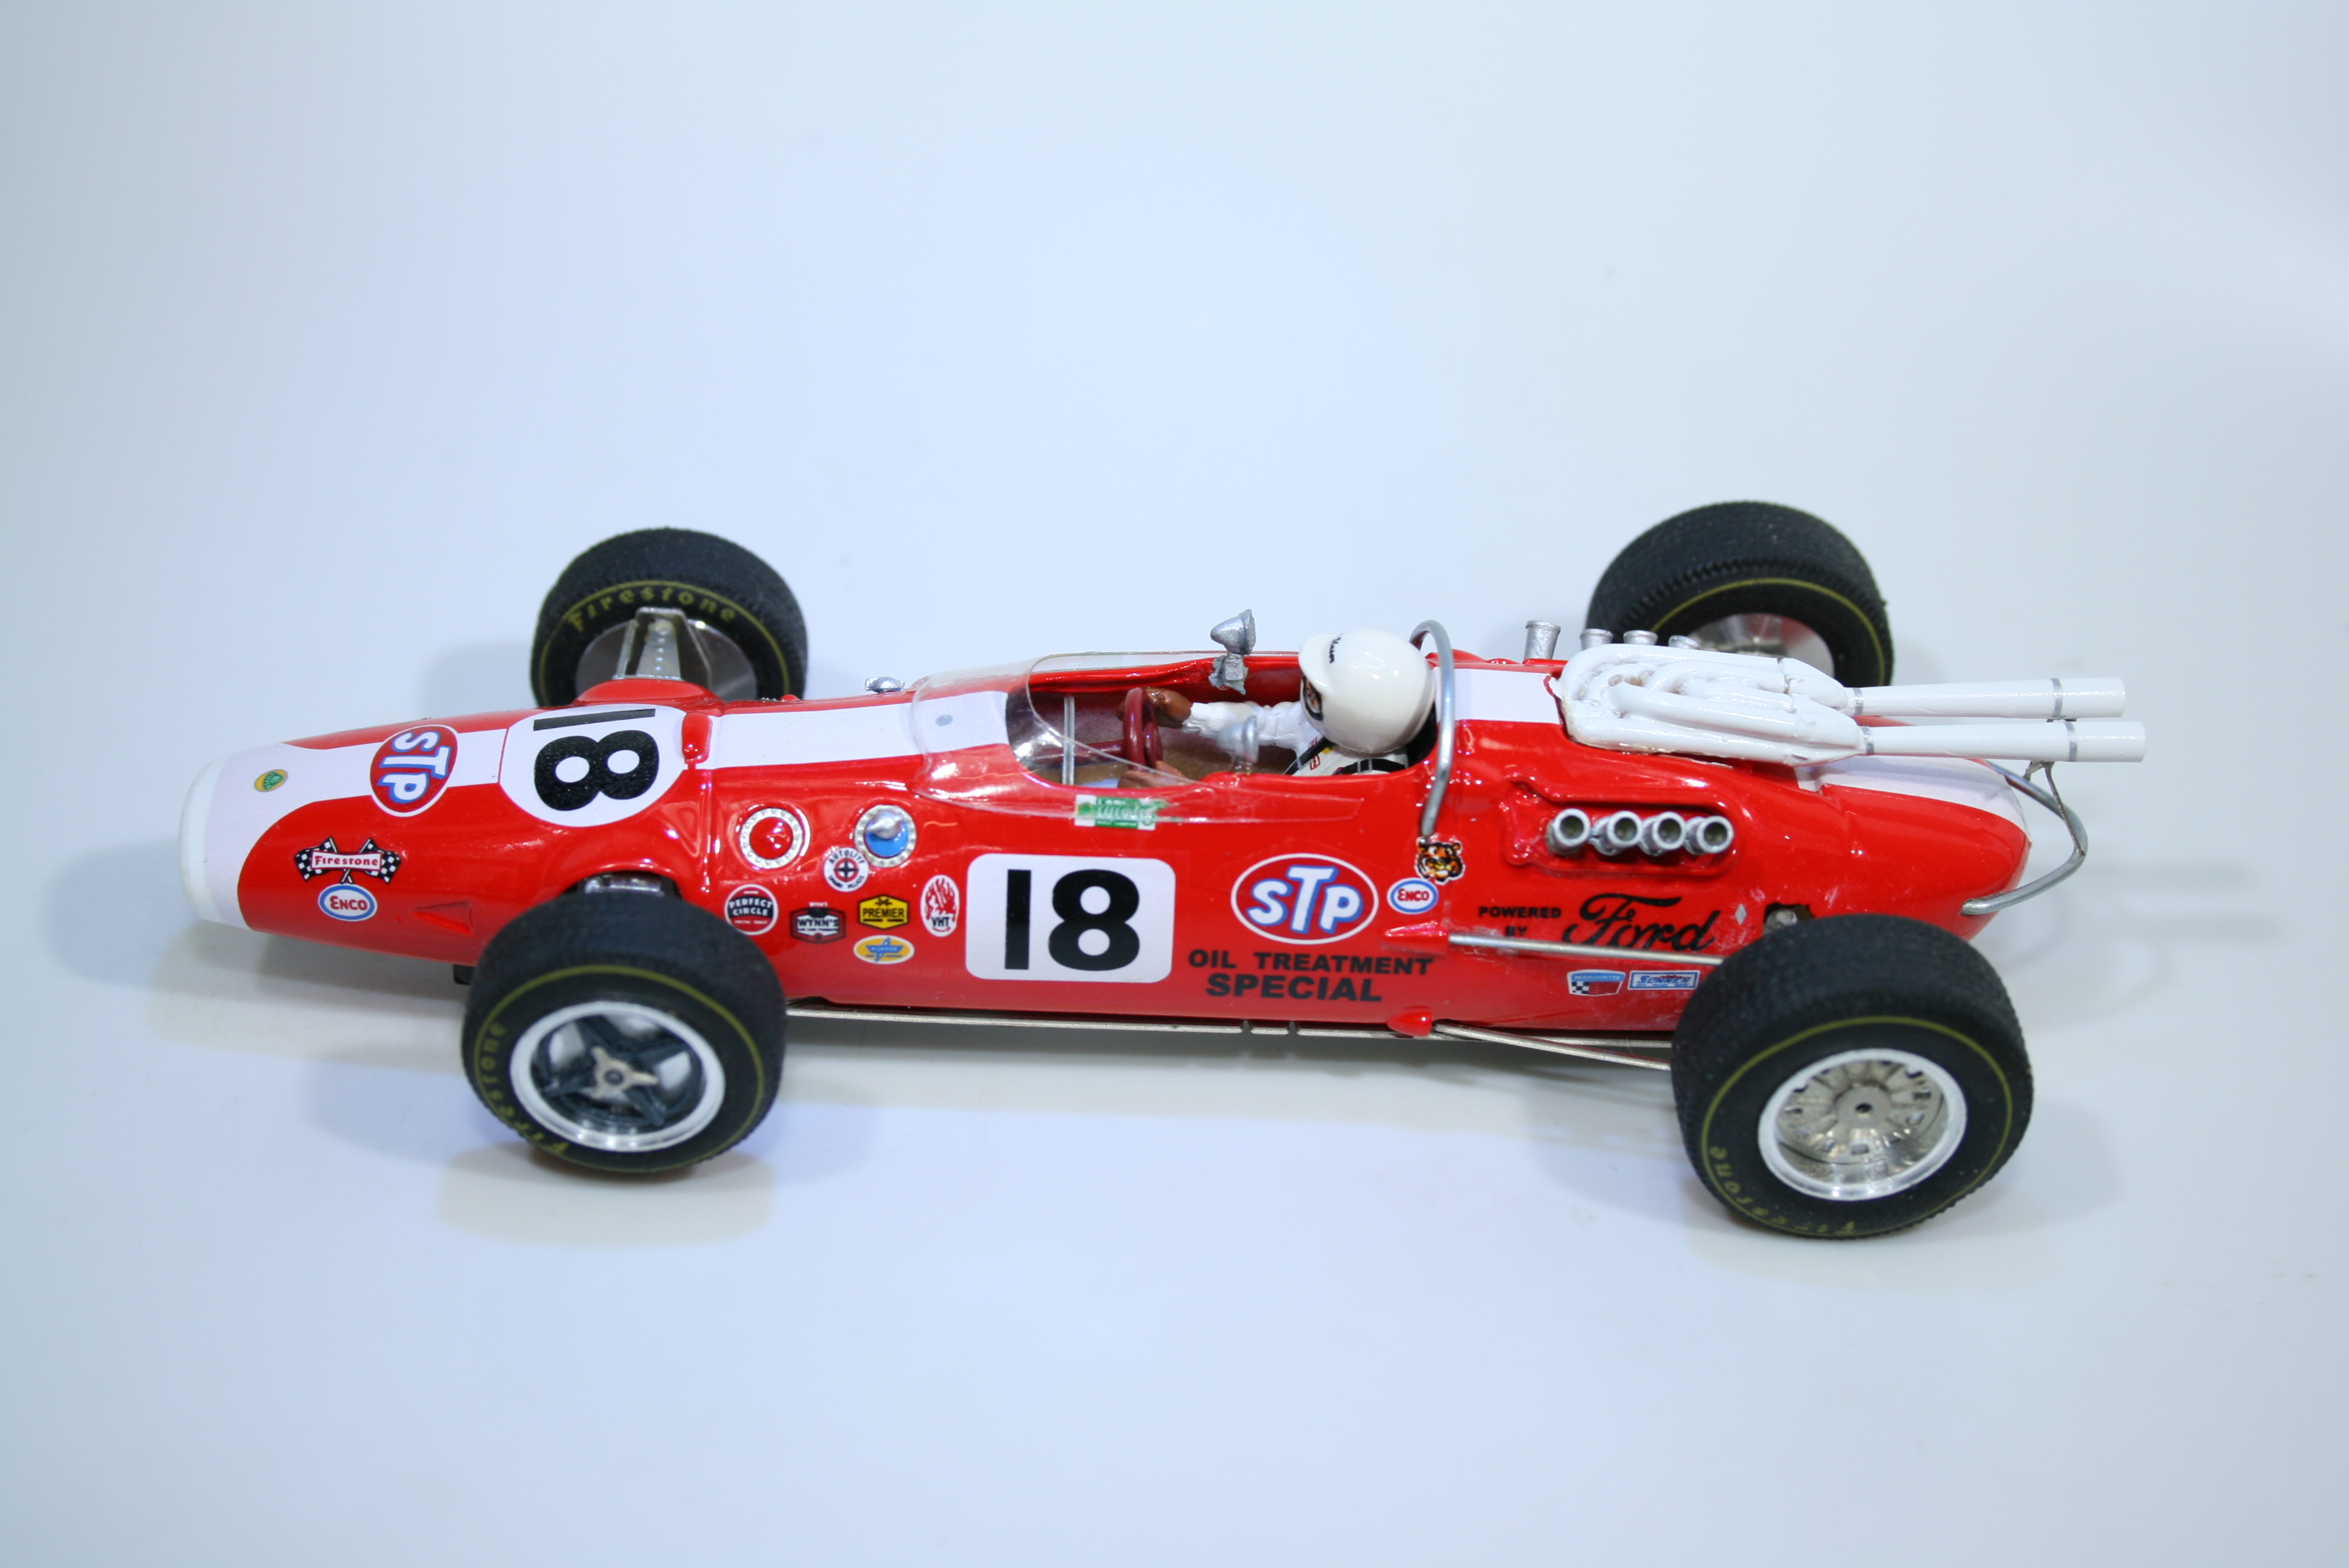 1517 Lotus 38 1966 A Unser Ostorero ODG107 2007 Boxed